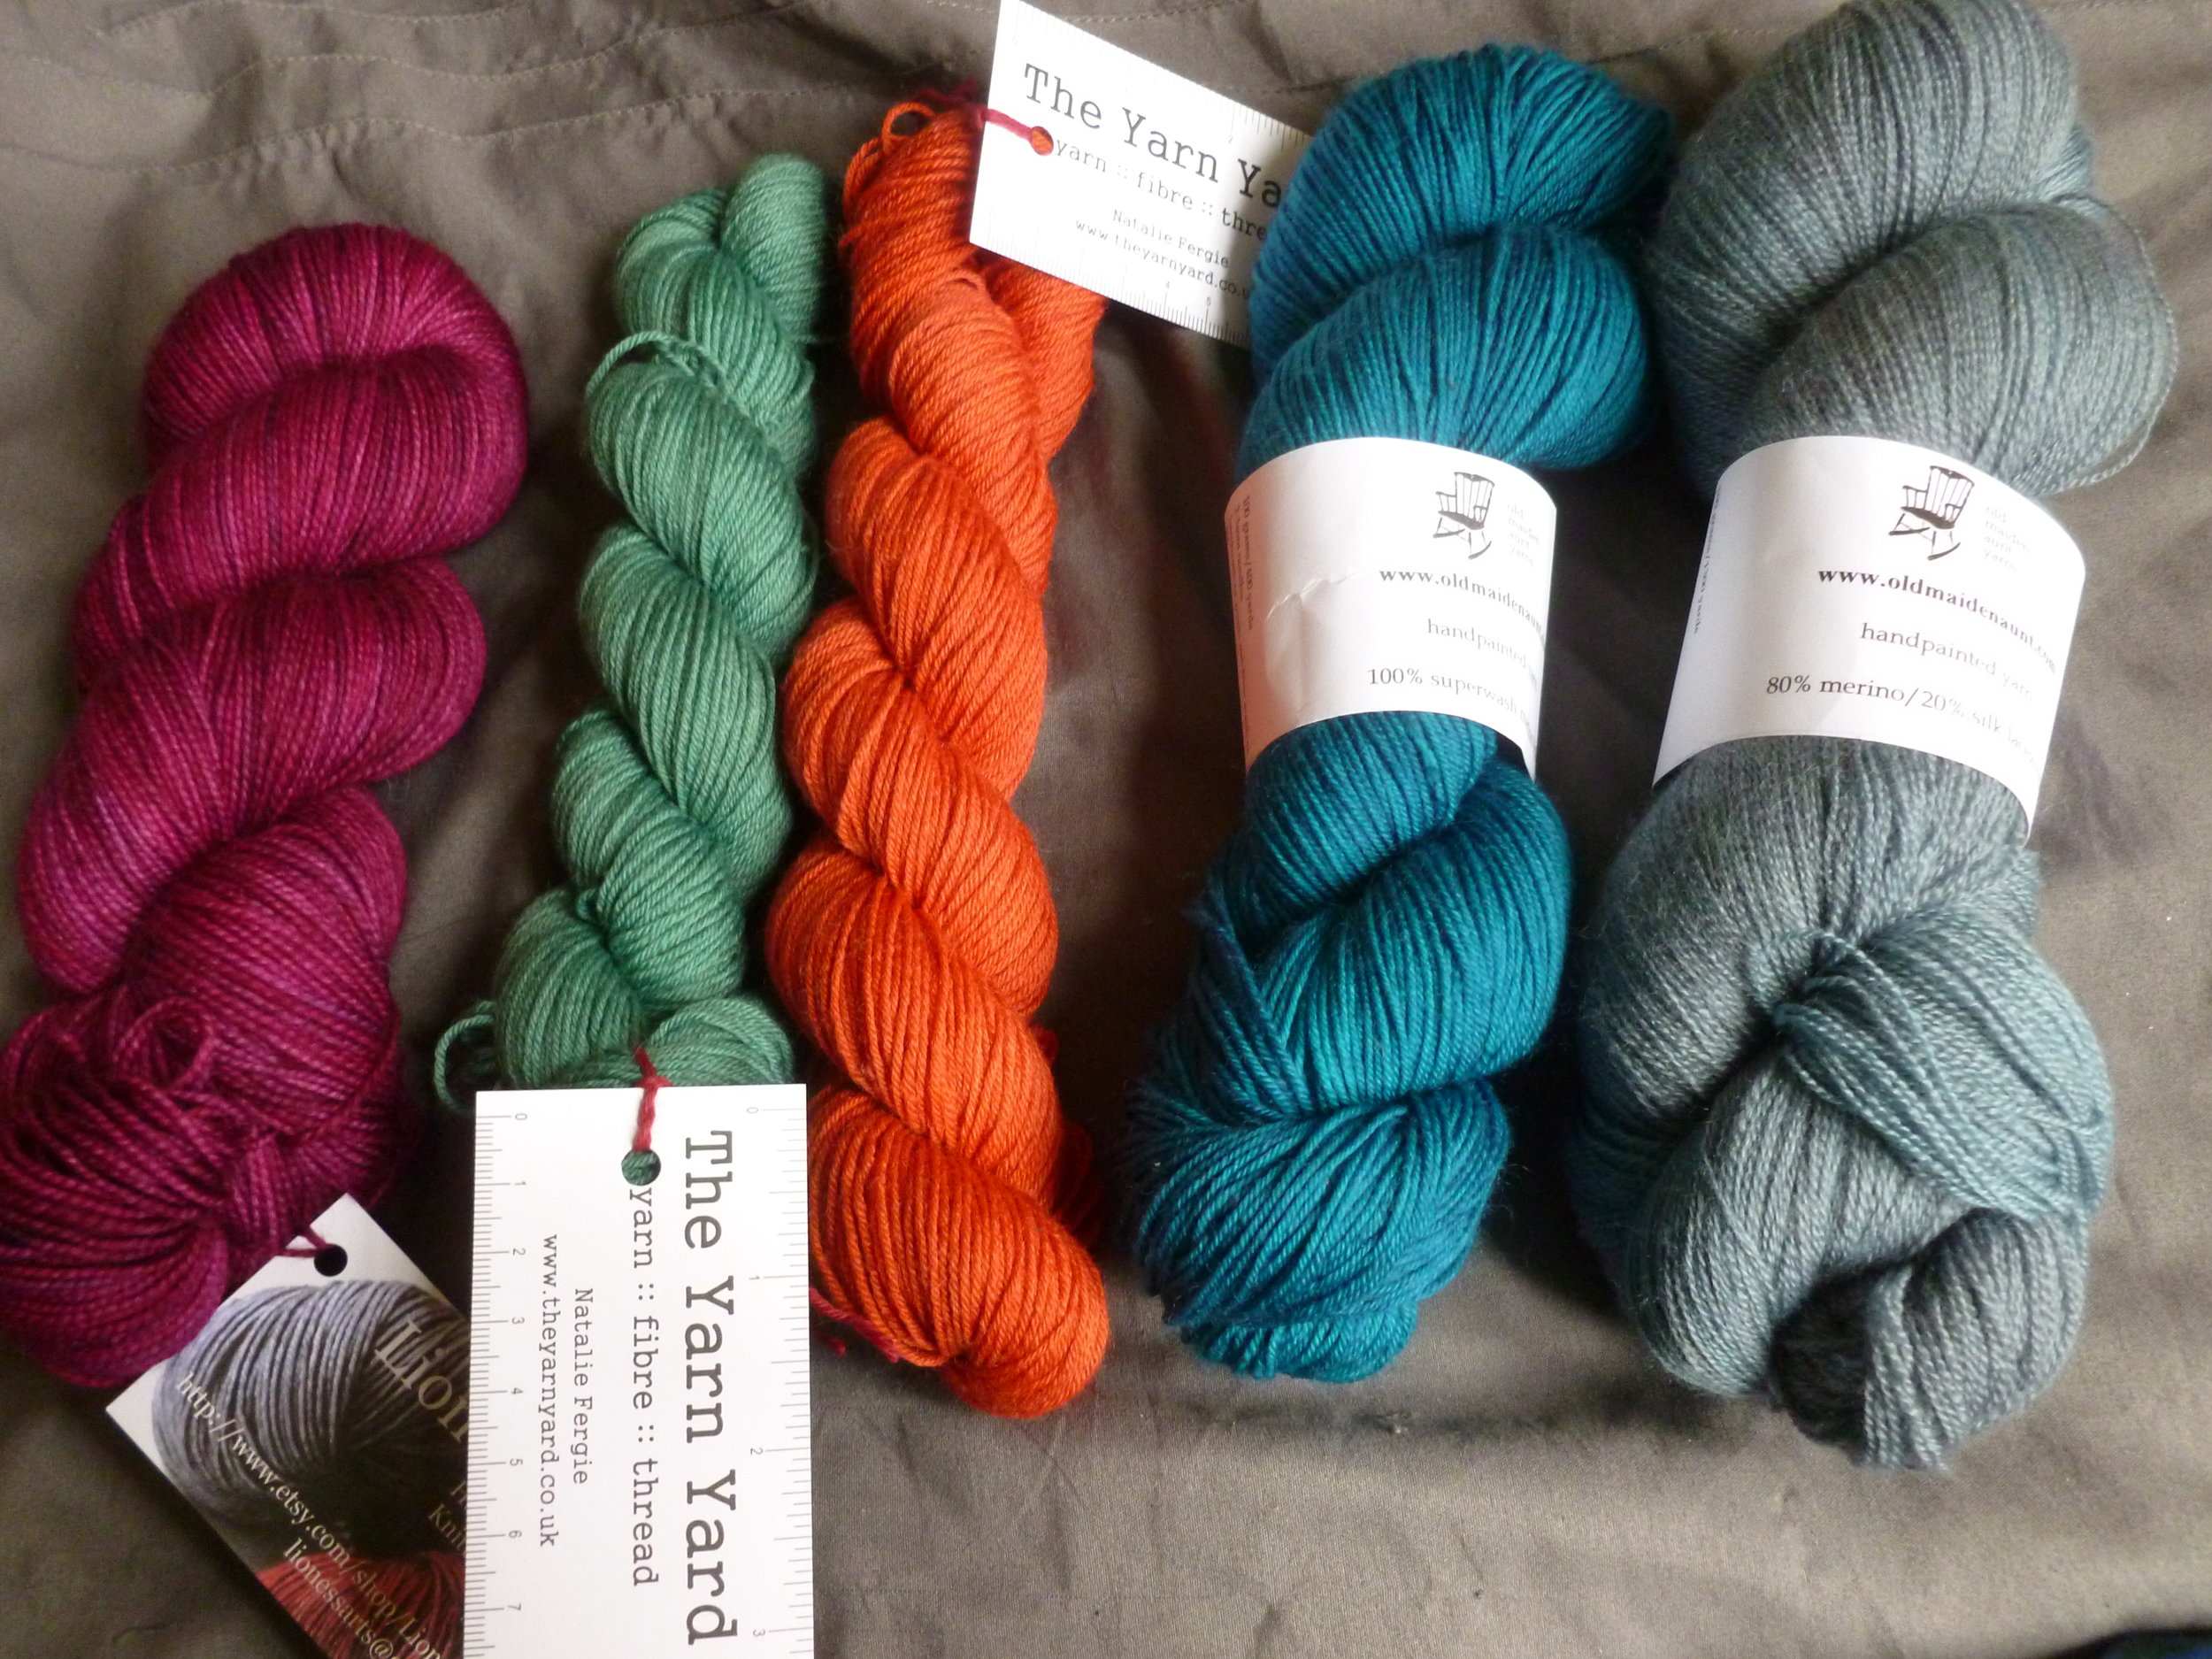 Victorious spoils of war! L-R: Lioness Yarns King of the Jungle Sock, 'Thoughts'; The Yarn Yard BFL (2 skeins, green and orange); Old Maiden Aunt 100% merino 4-ply, 'Seen the Ocean'; Old Maiden Aunt 80% merino/20% silk laceweight, 'Moody.'